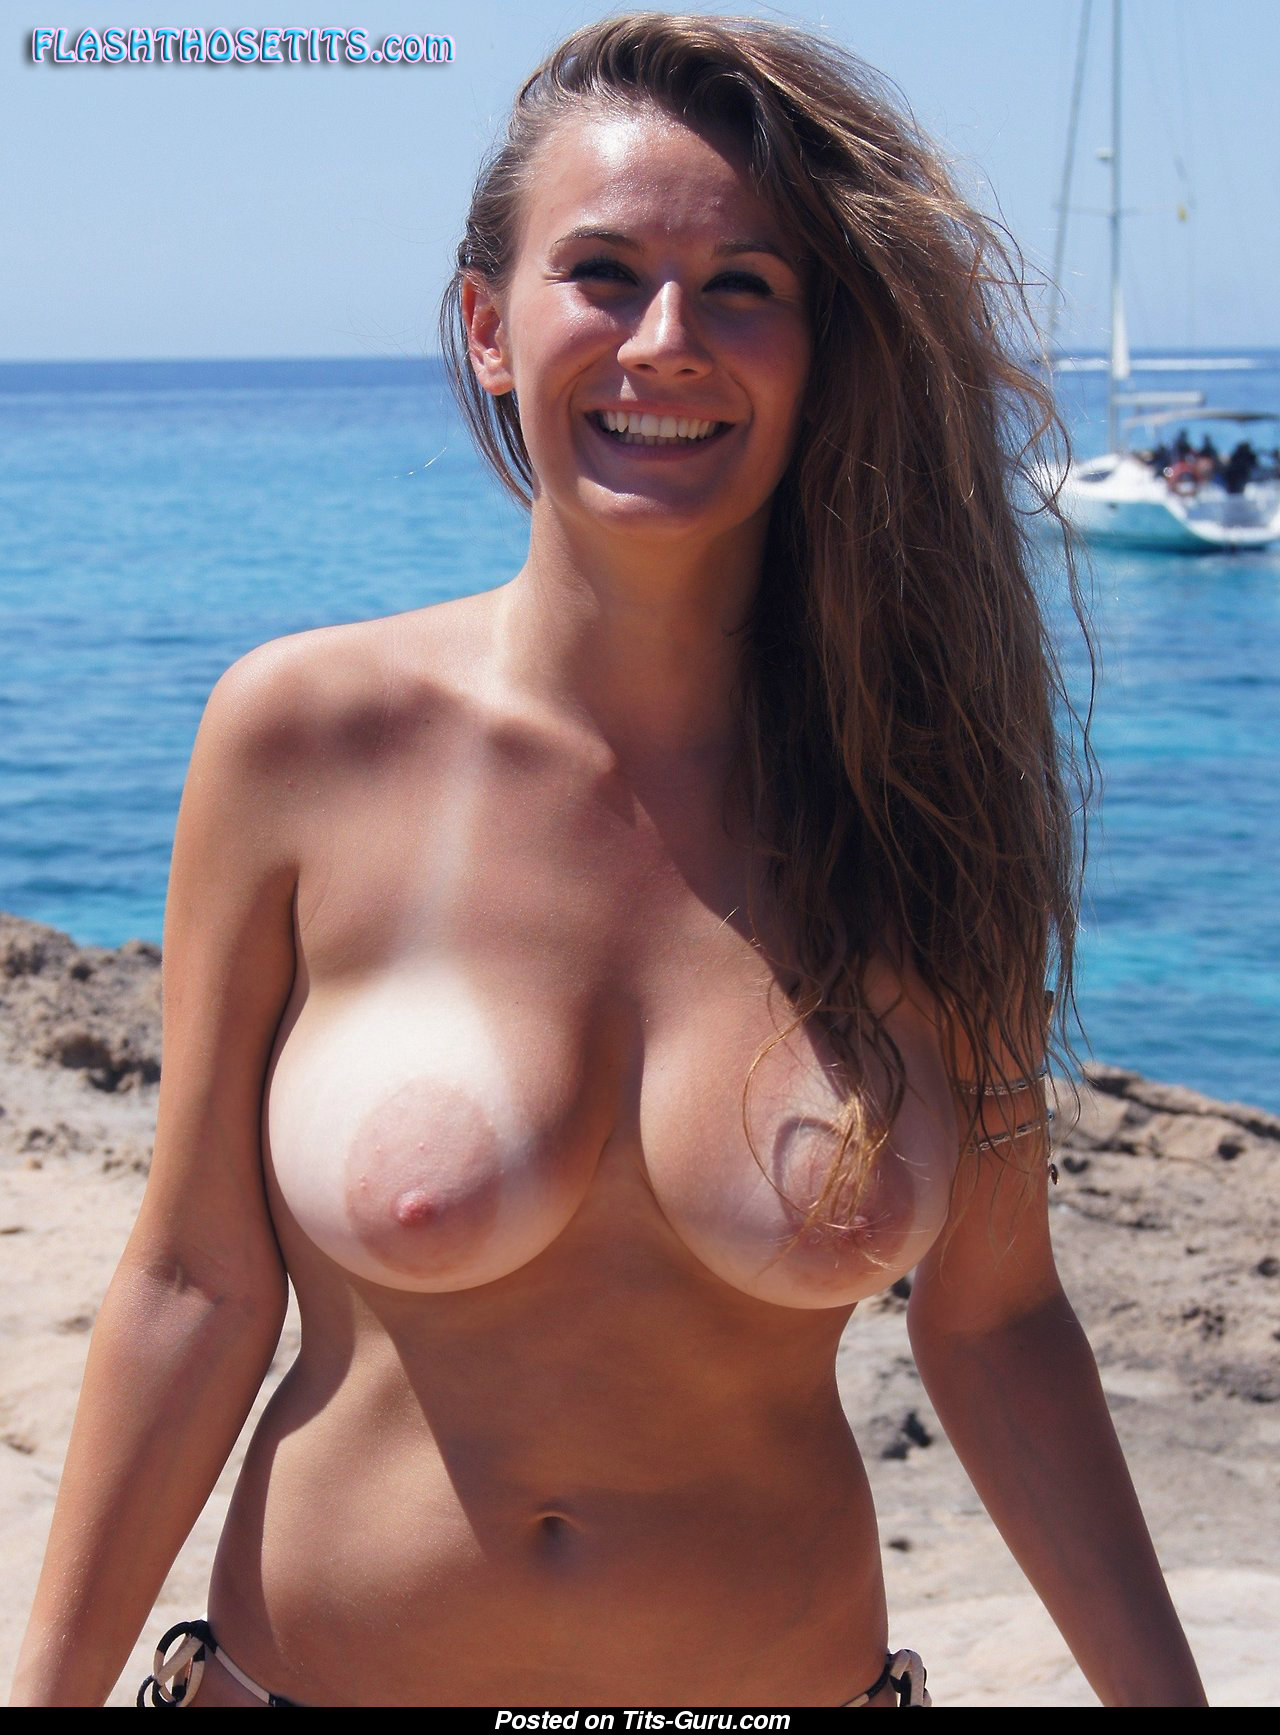 This hot beach babe brunette has such big natural tits